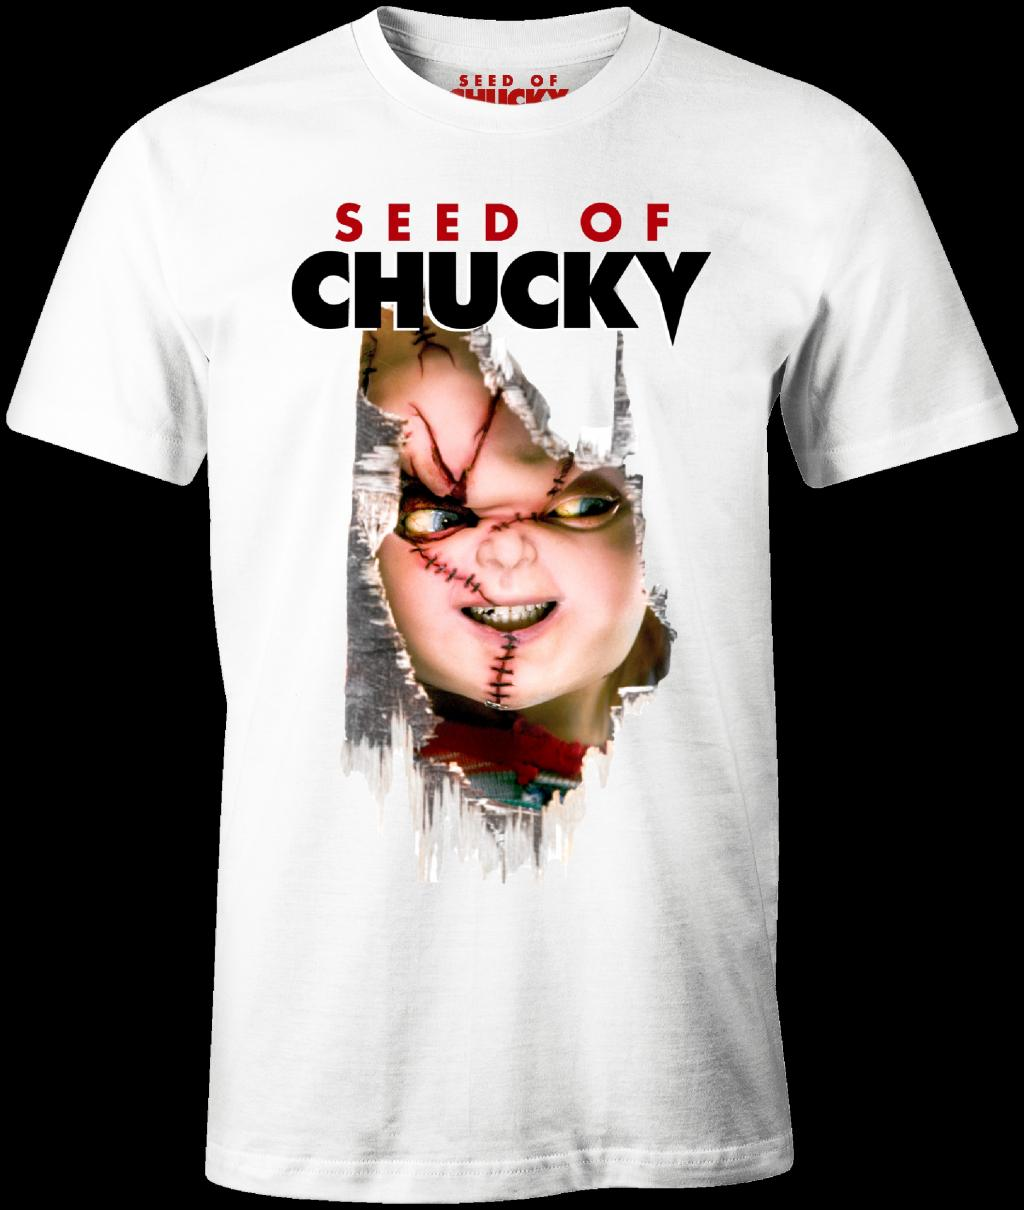 HORROR - T-Shirt Seed of Chucky (S)